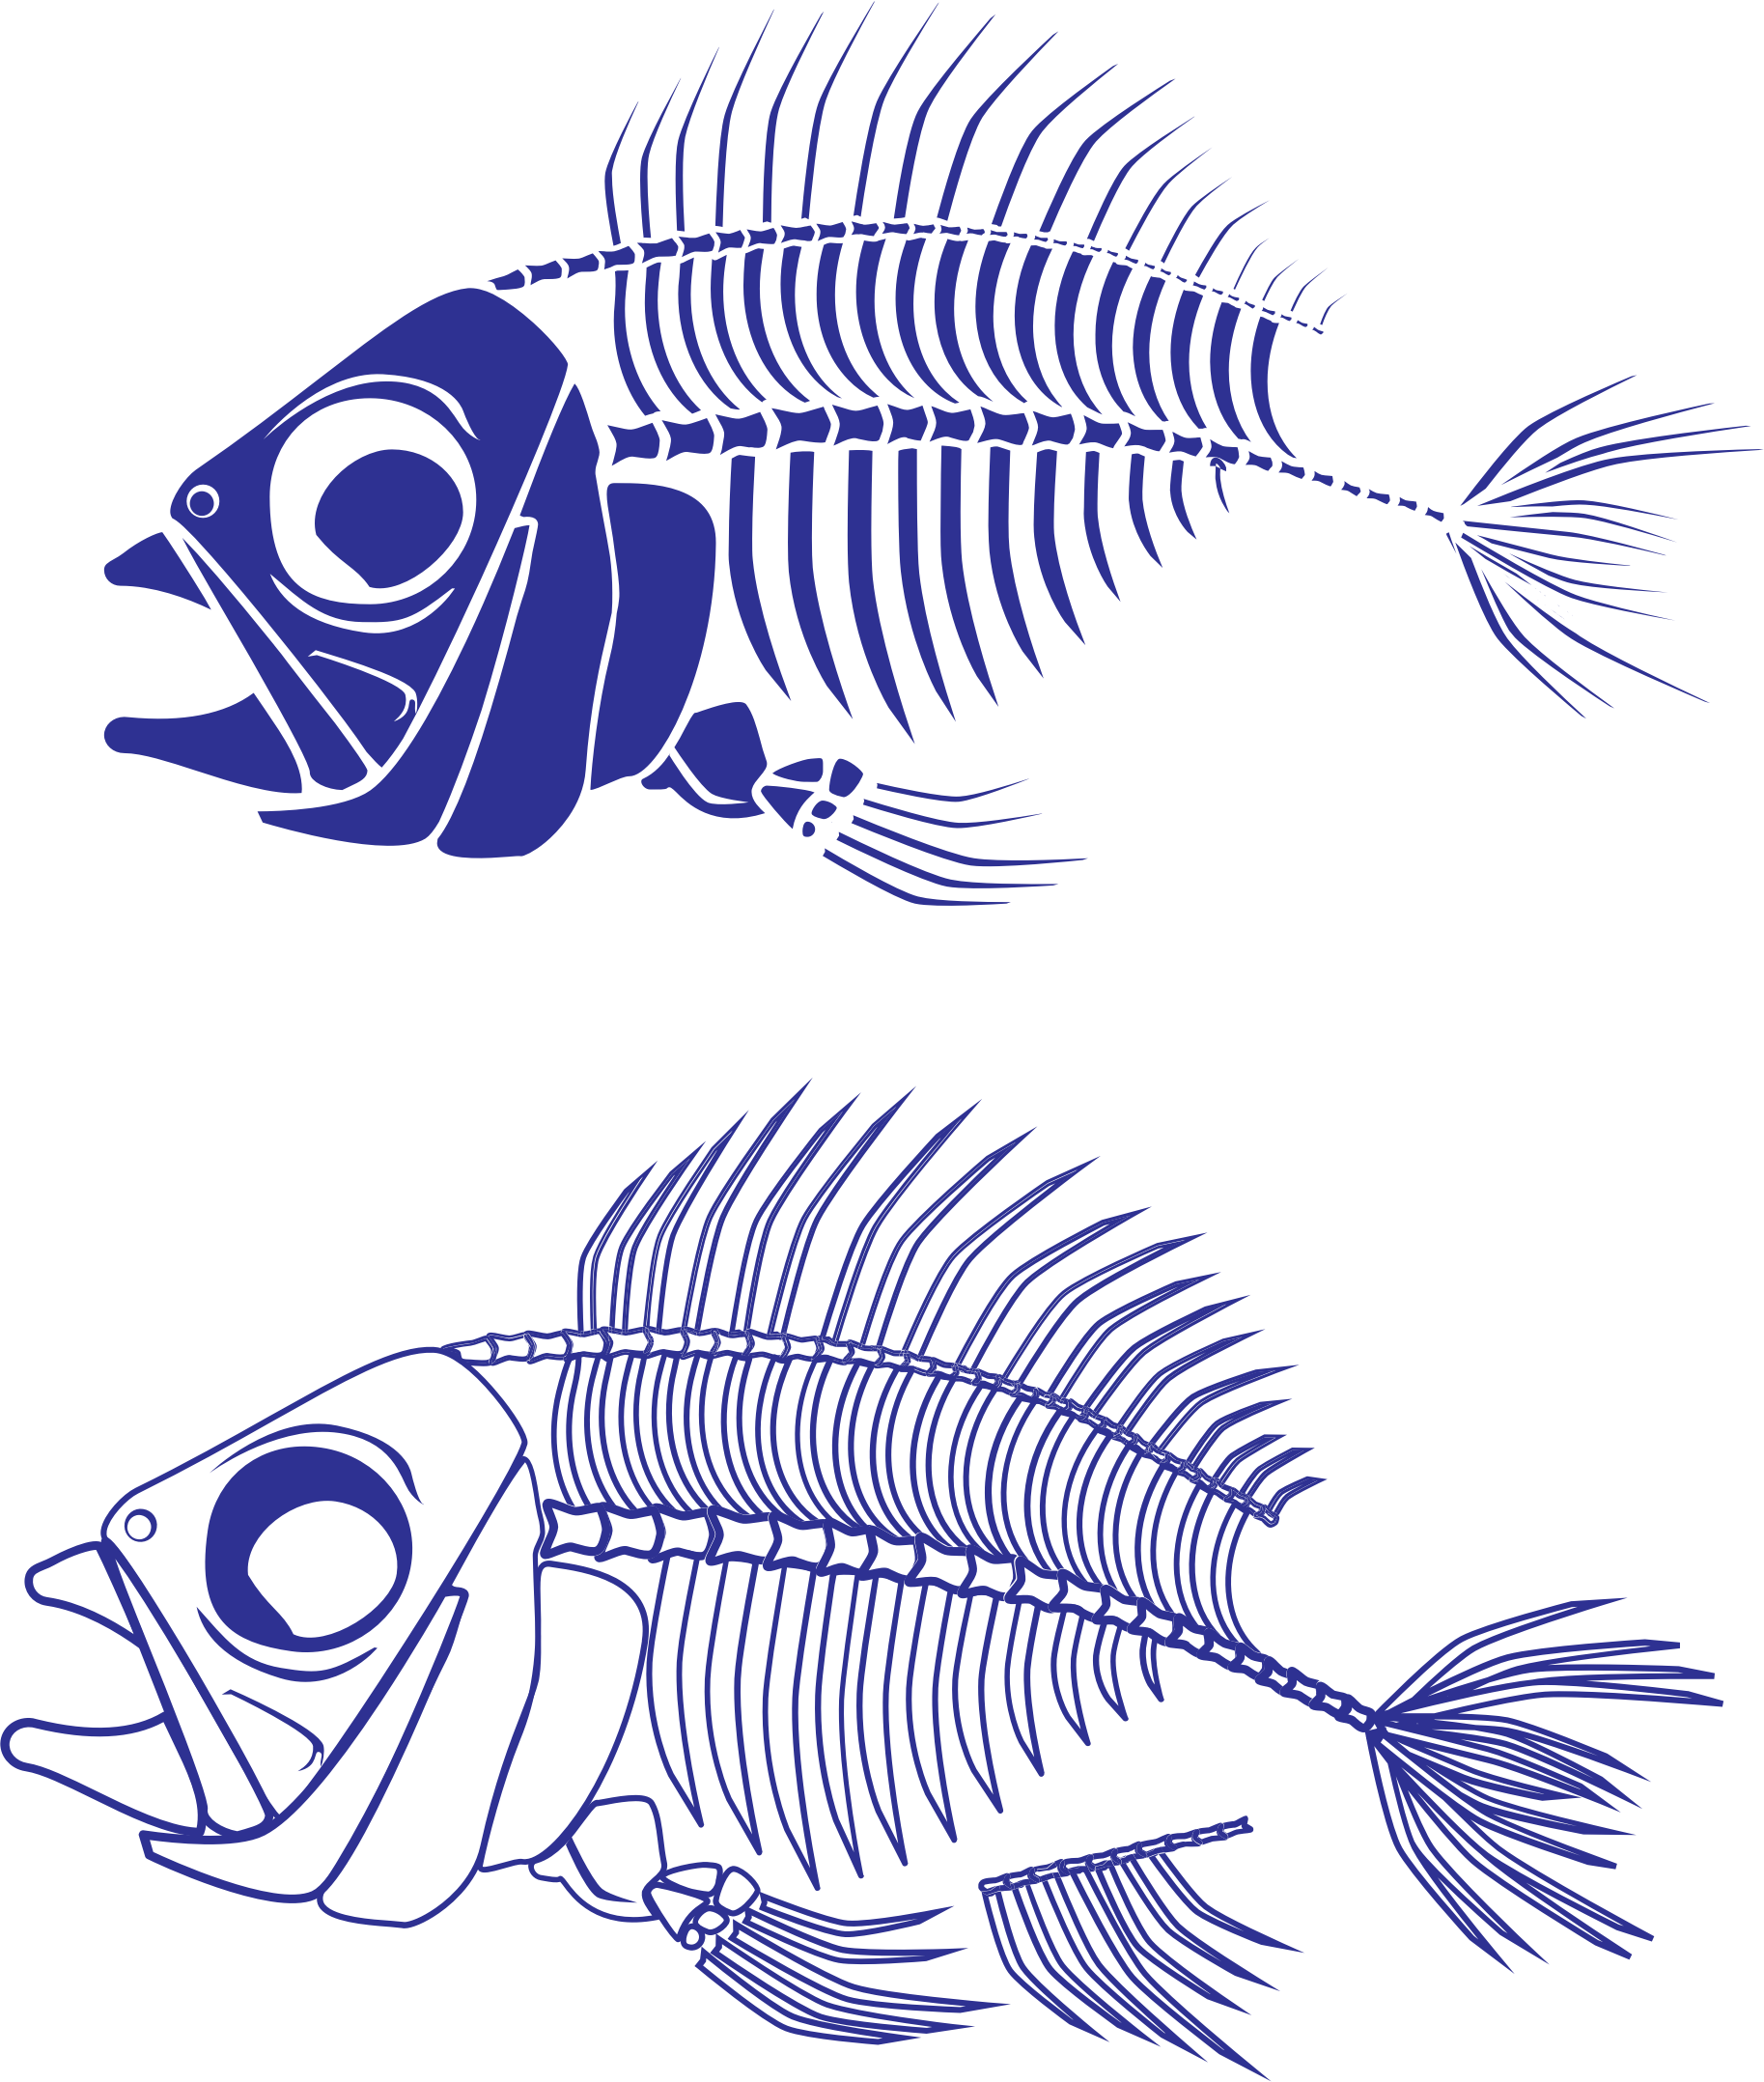 Fish sign clipart svg royalty free library Clipart - Fish Skeleton svg royalty free library